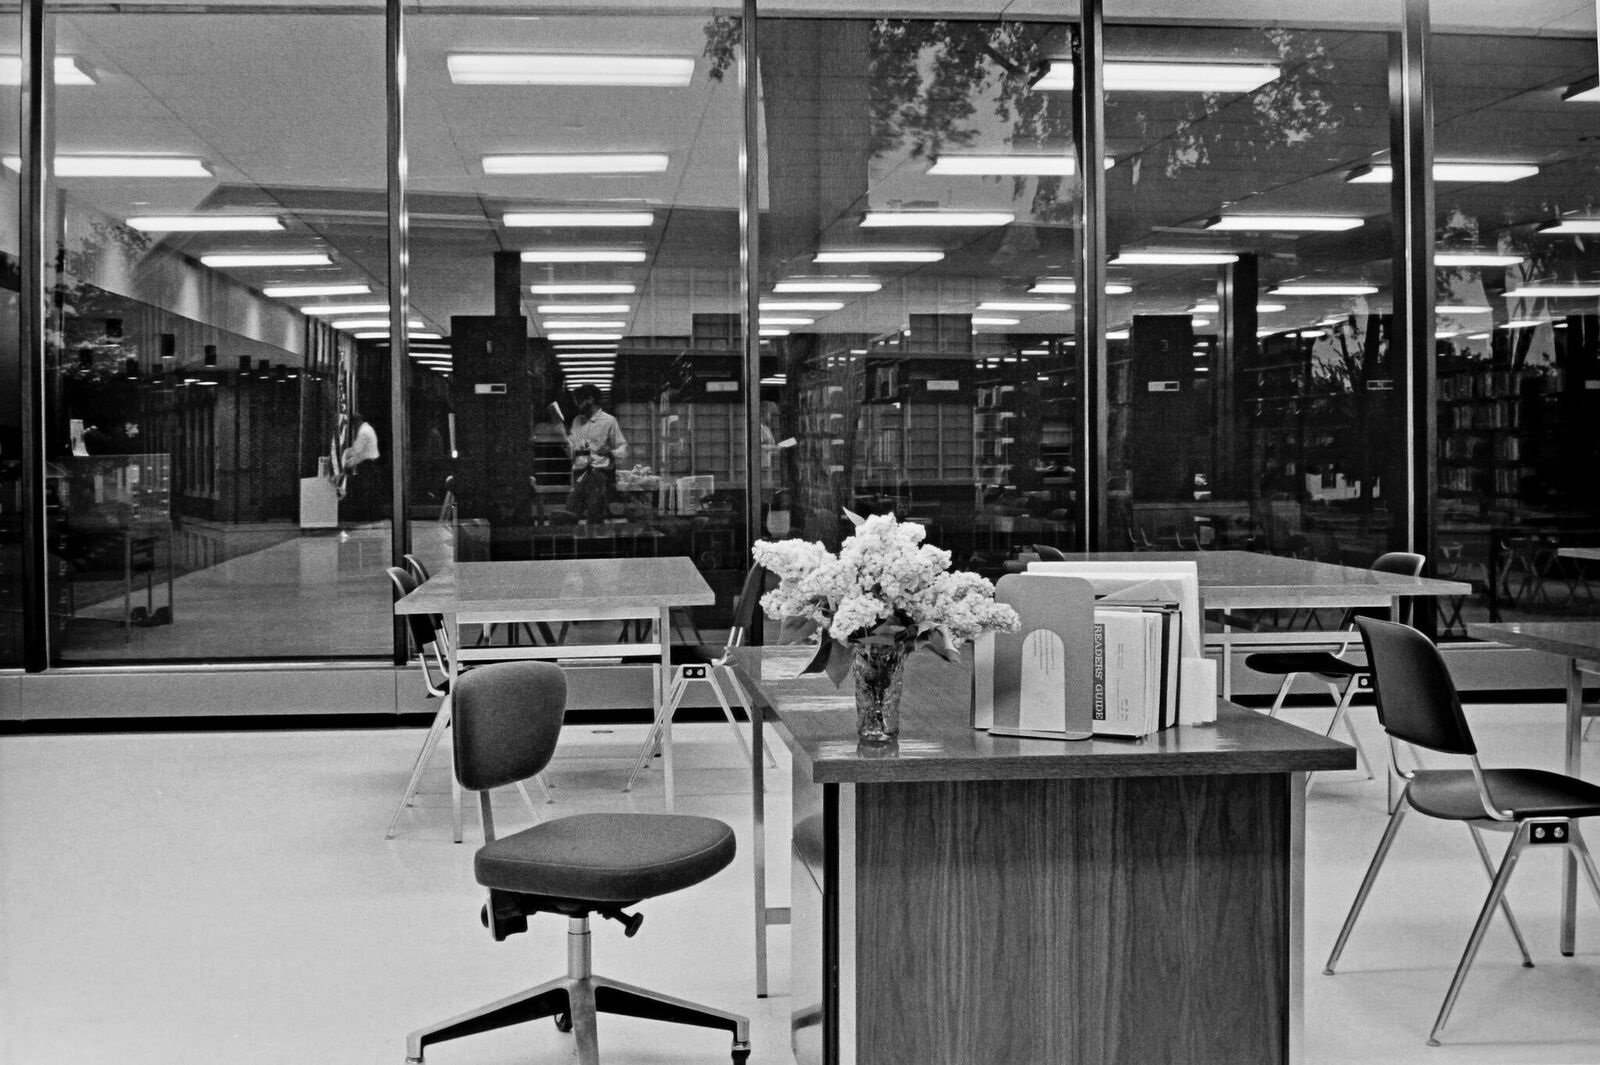 SouthPortland_Broadway_482_PublicLibary_1960s_Research_Tables_CHRISTOPHER_GRASSE.jpg